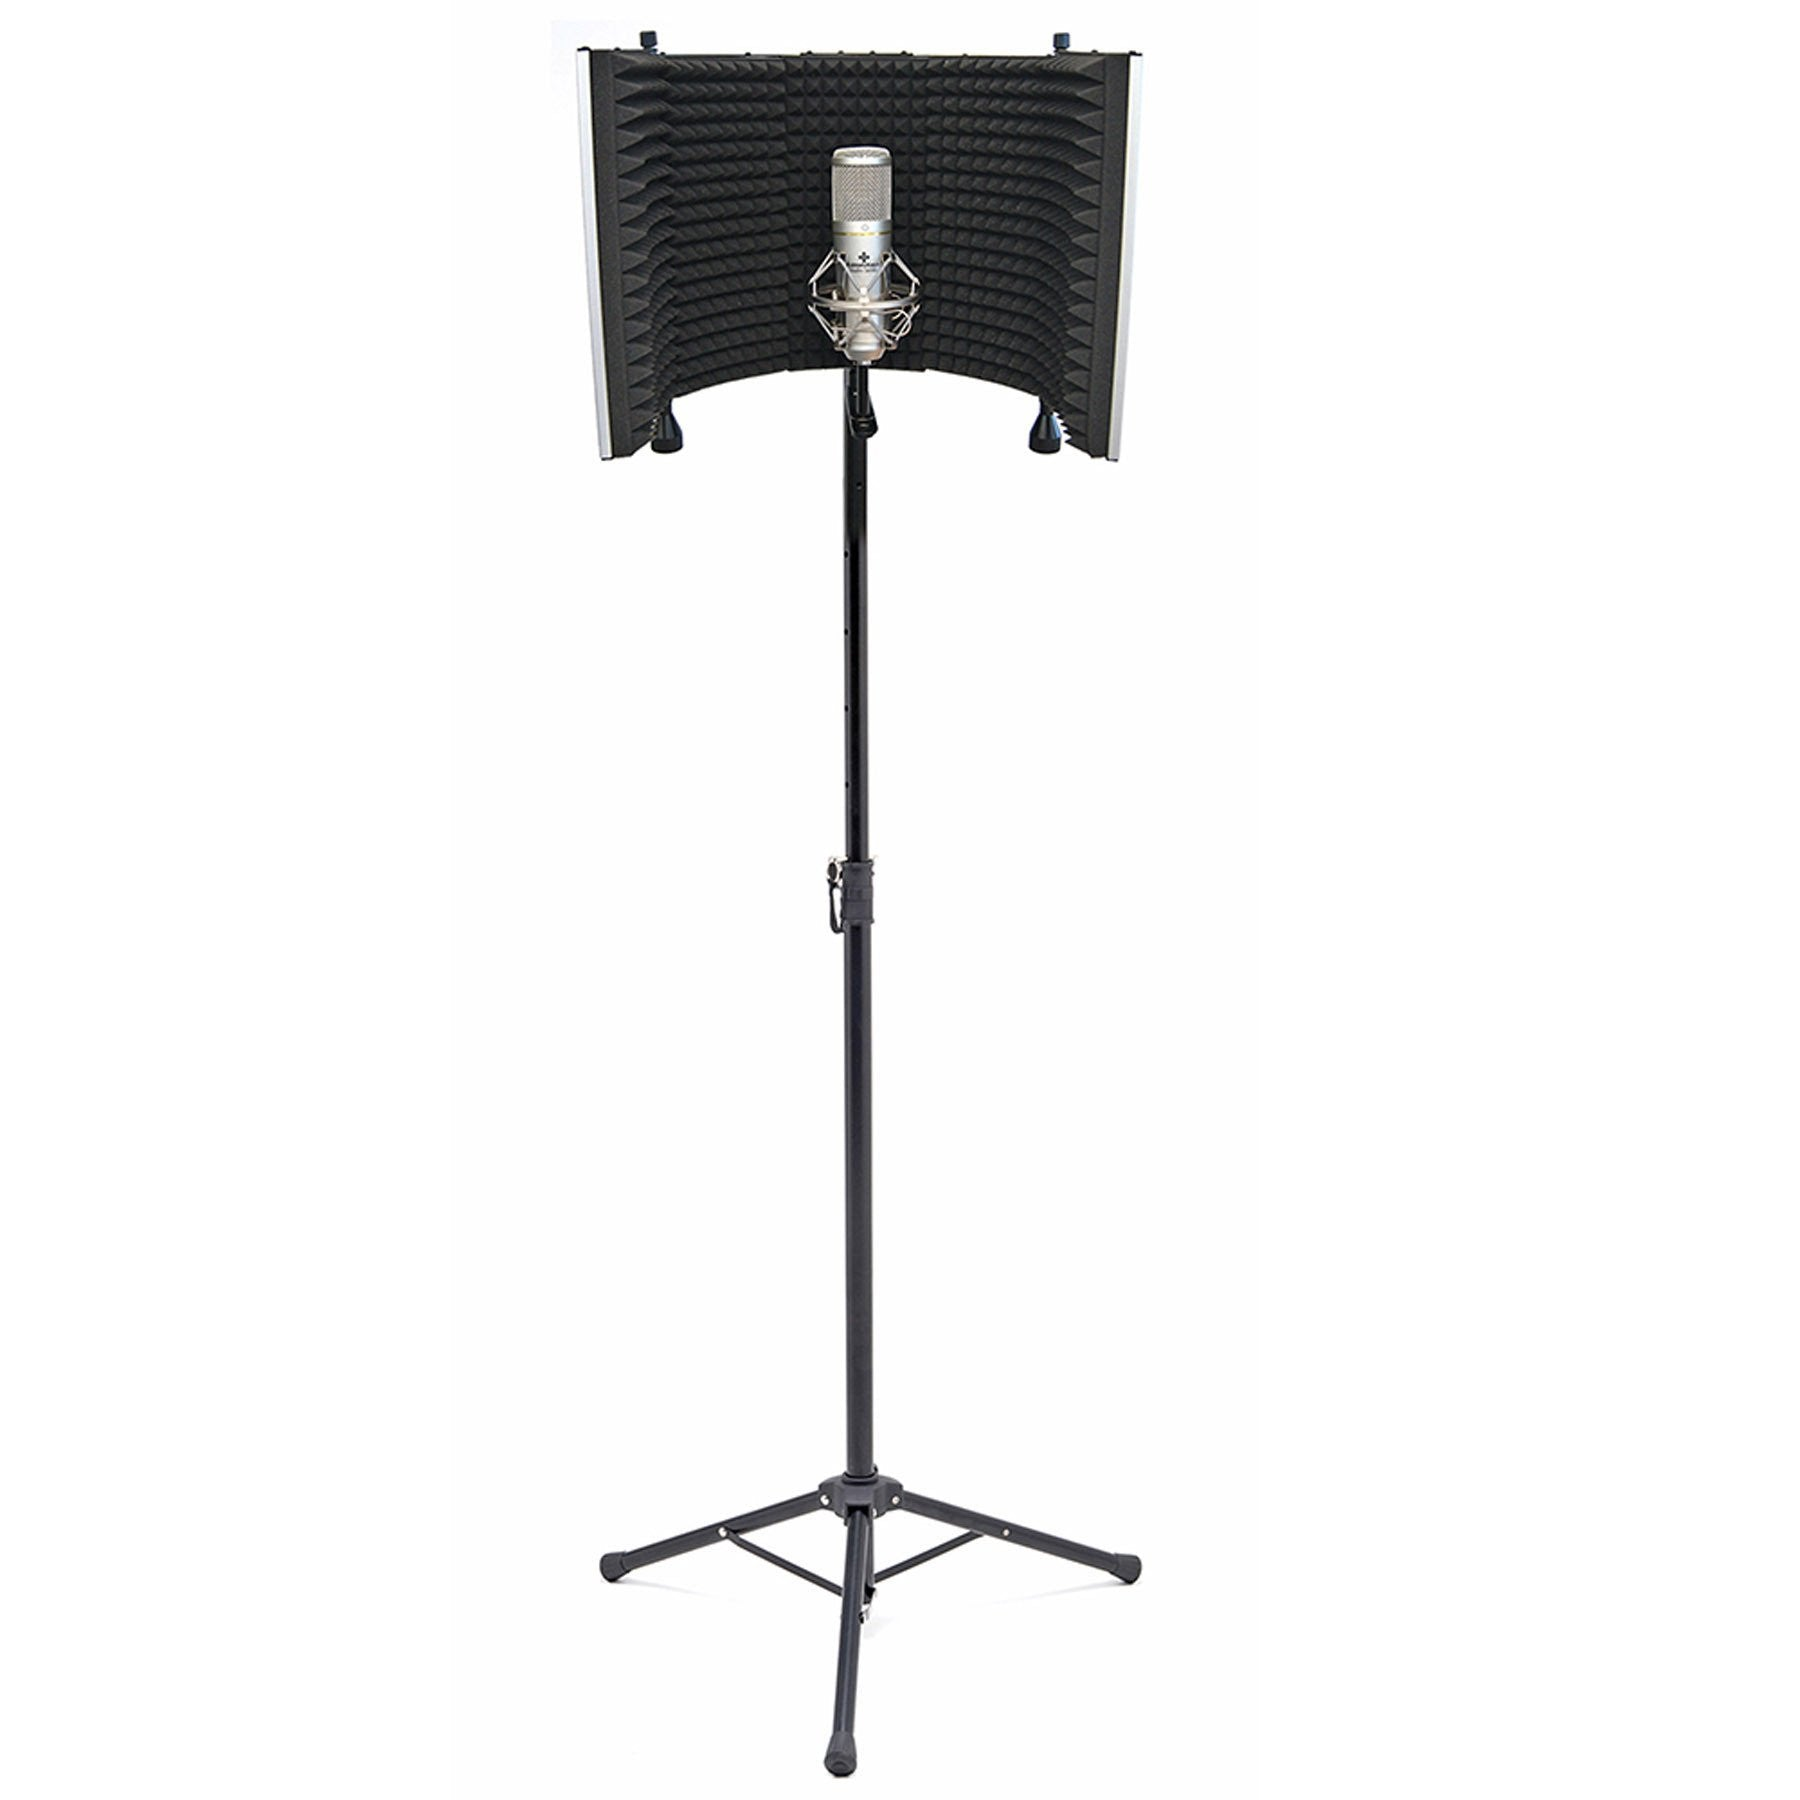 Portable Vocal Booth Pro with Floor & Desk Stands